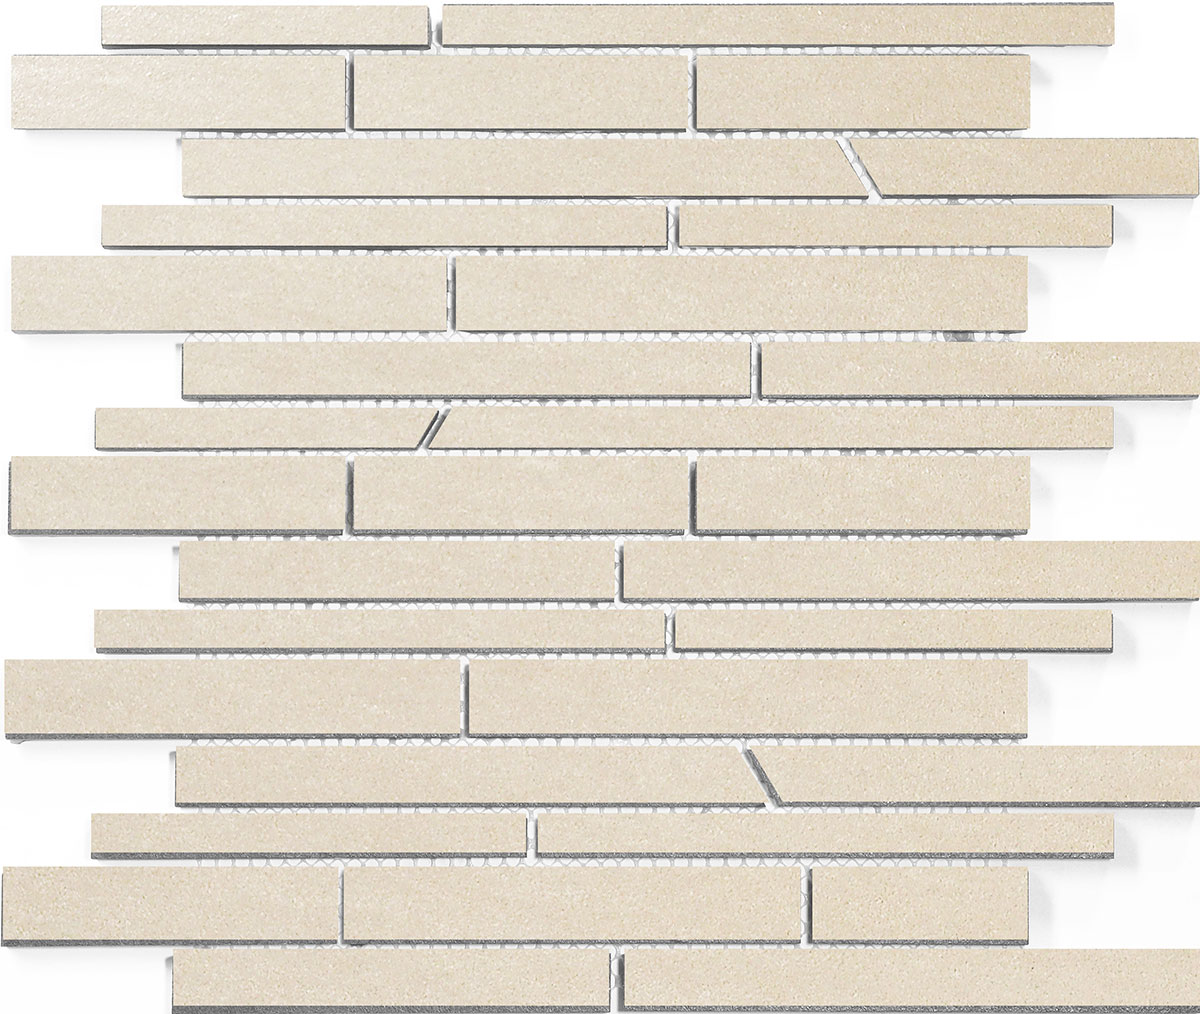 PICCADILLY hellbeige Mauerverband Image